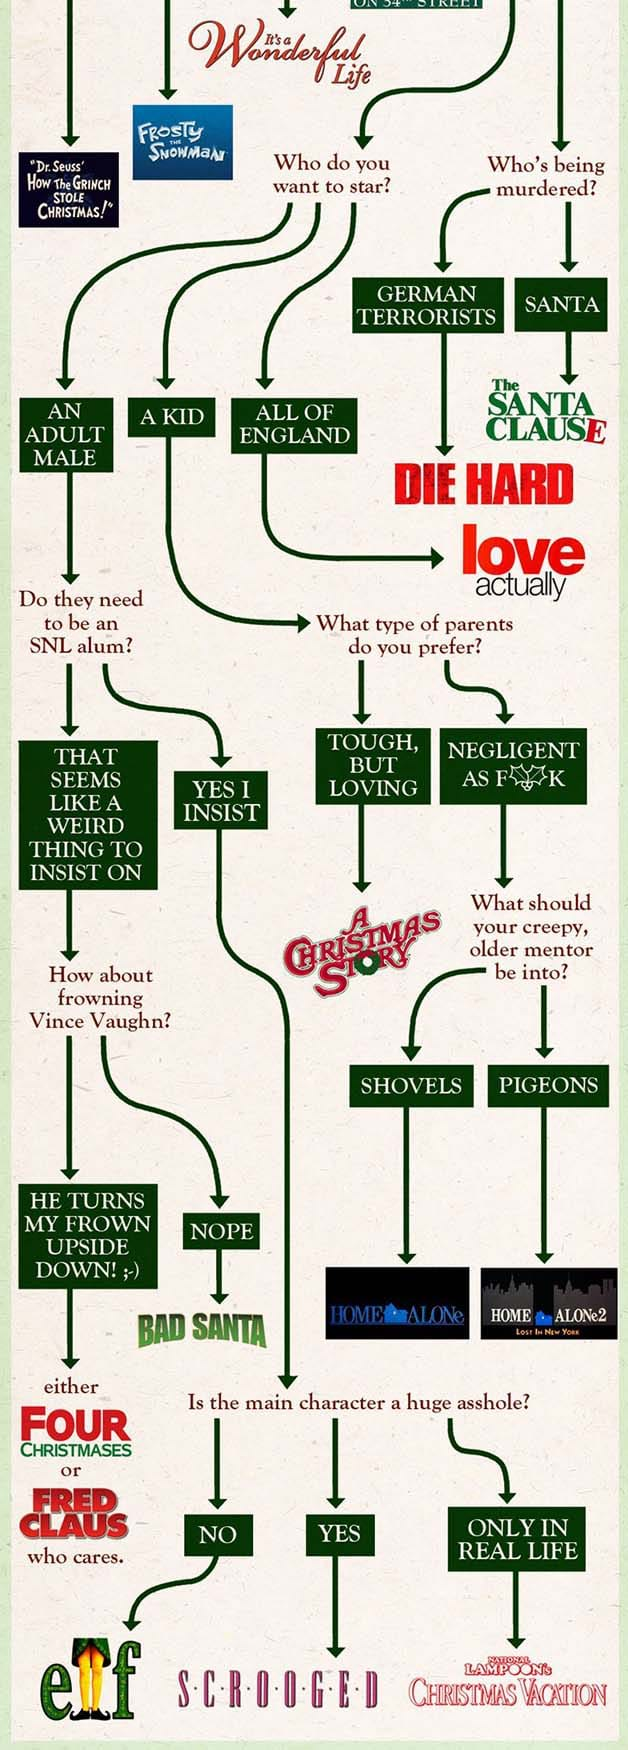 Which Christmas Movie Should You Watch?